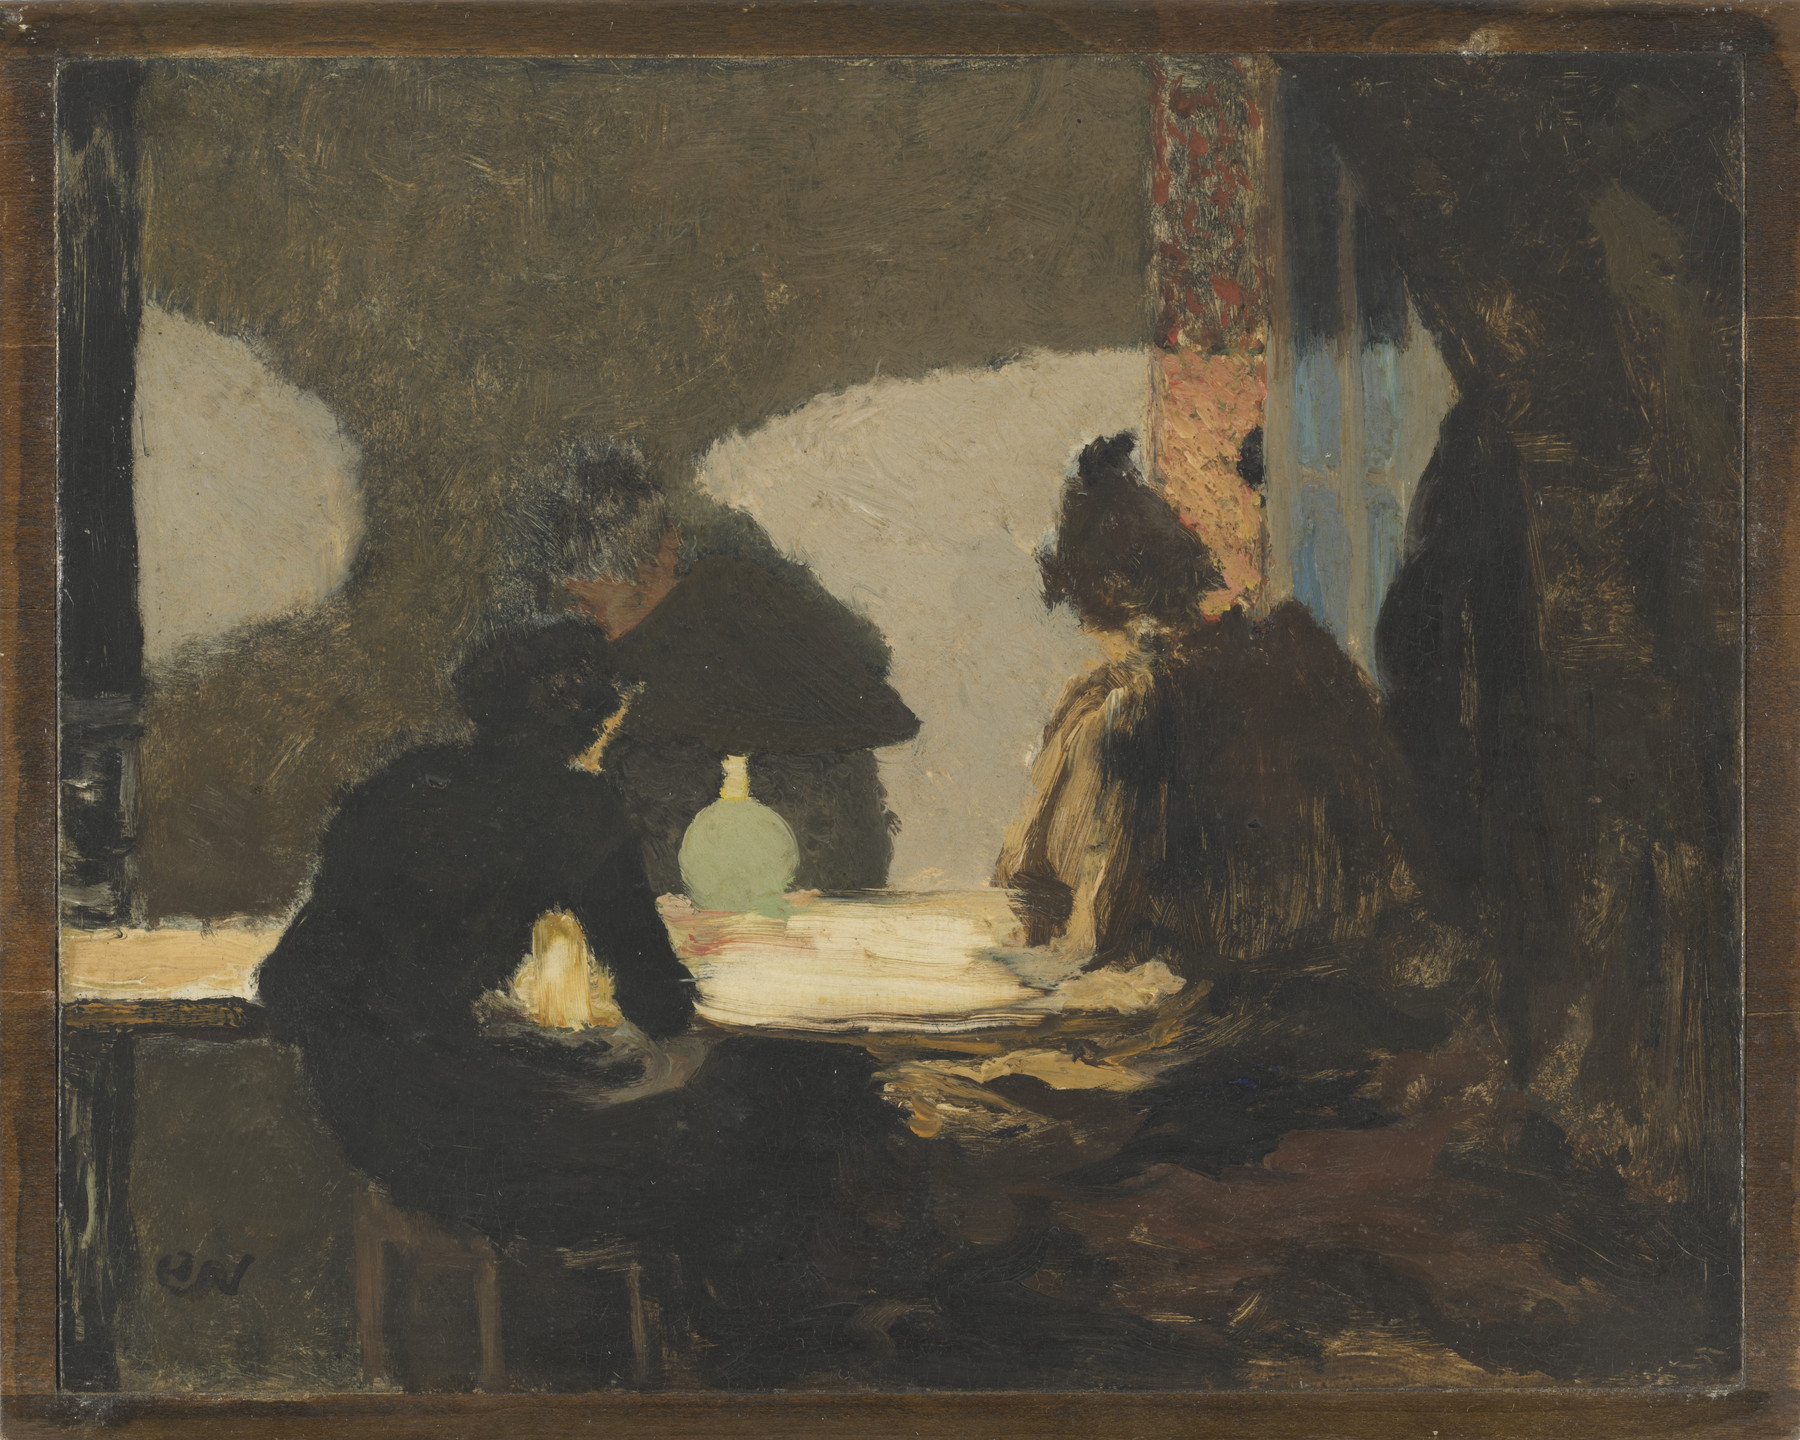 Édouard Vuillard. The Green Lamp. 1893